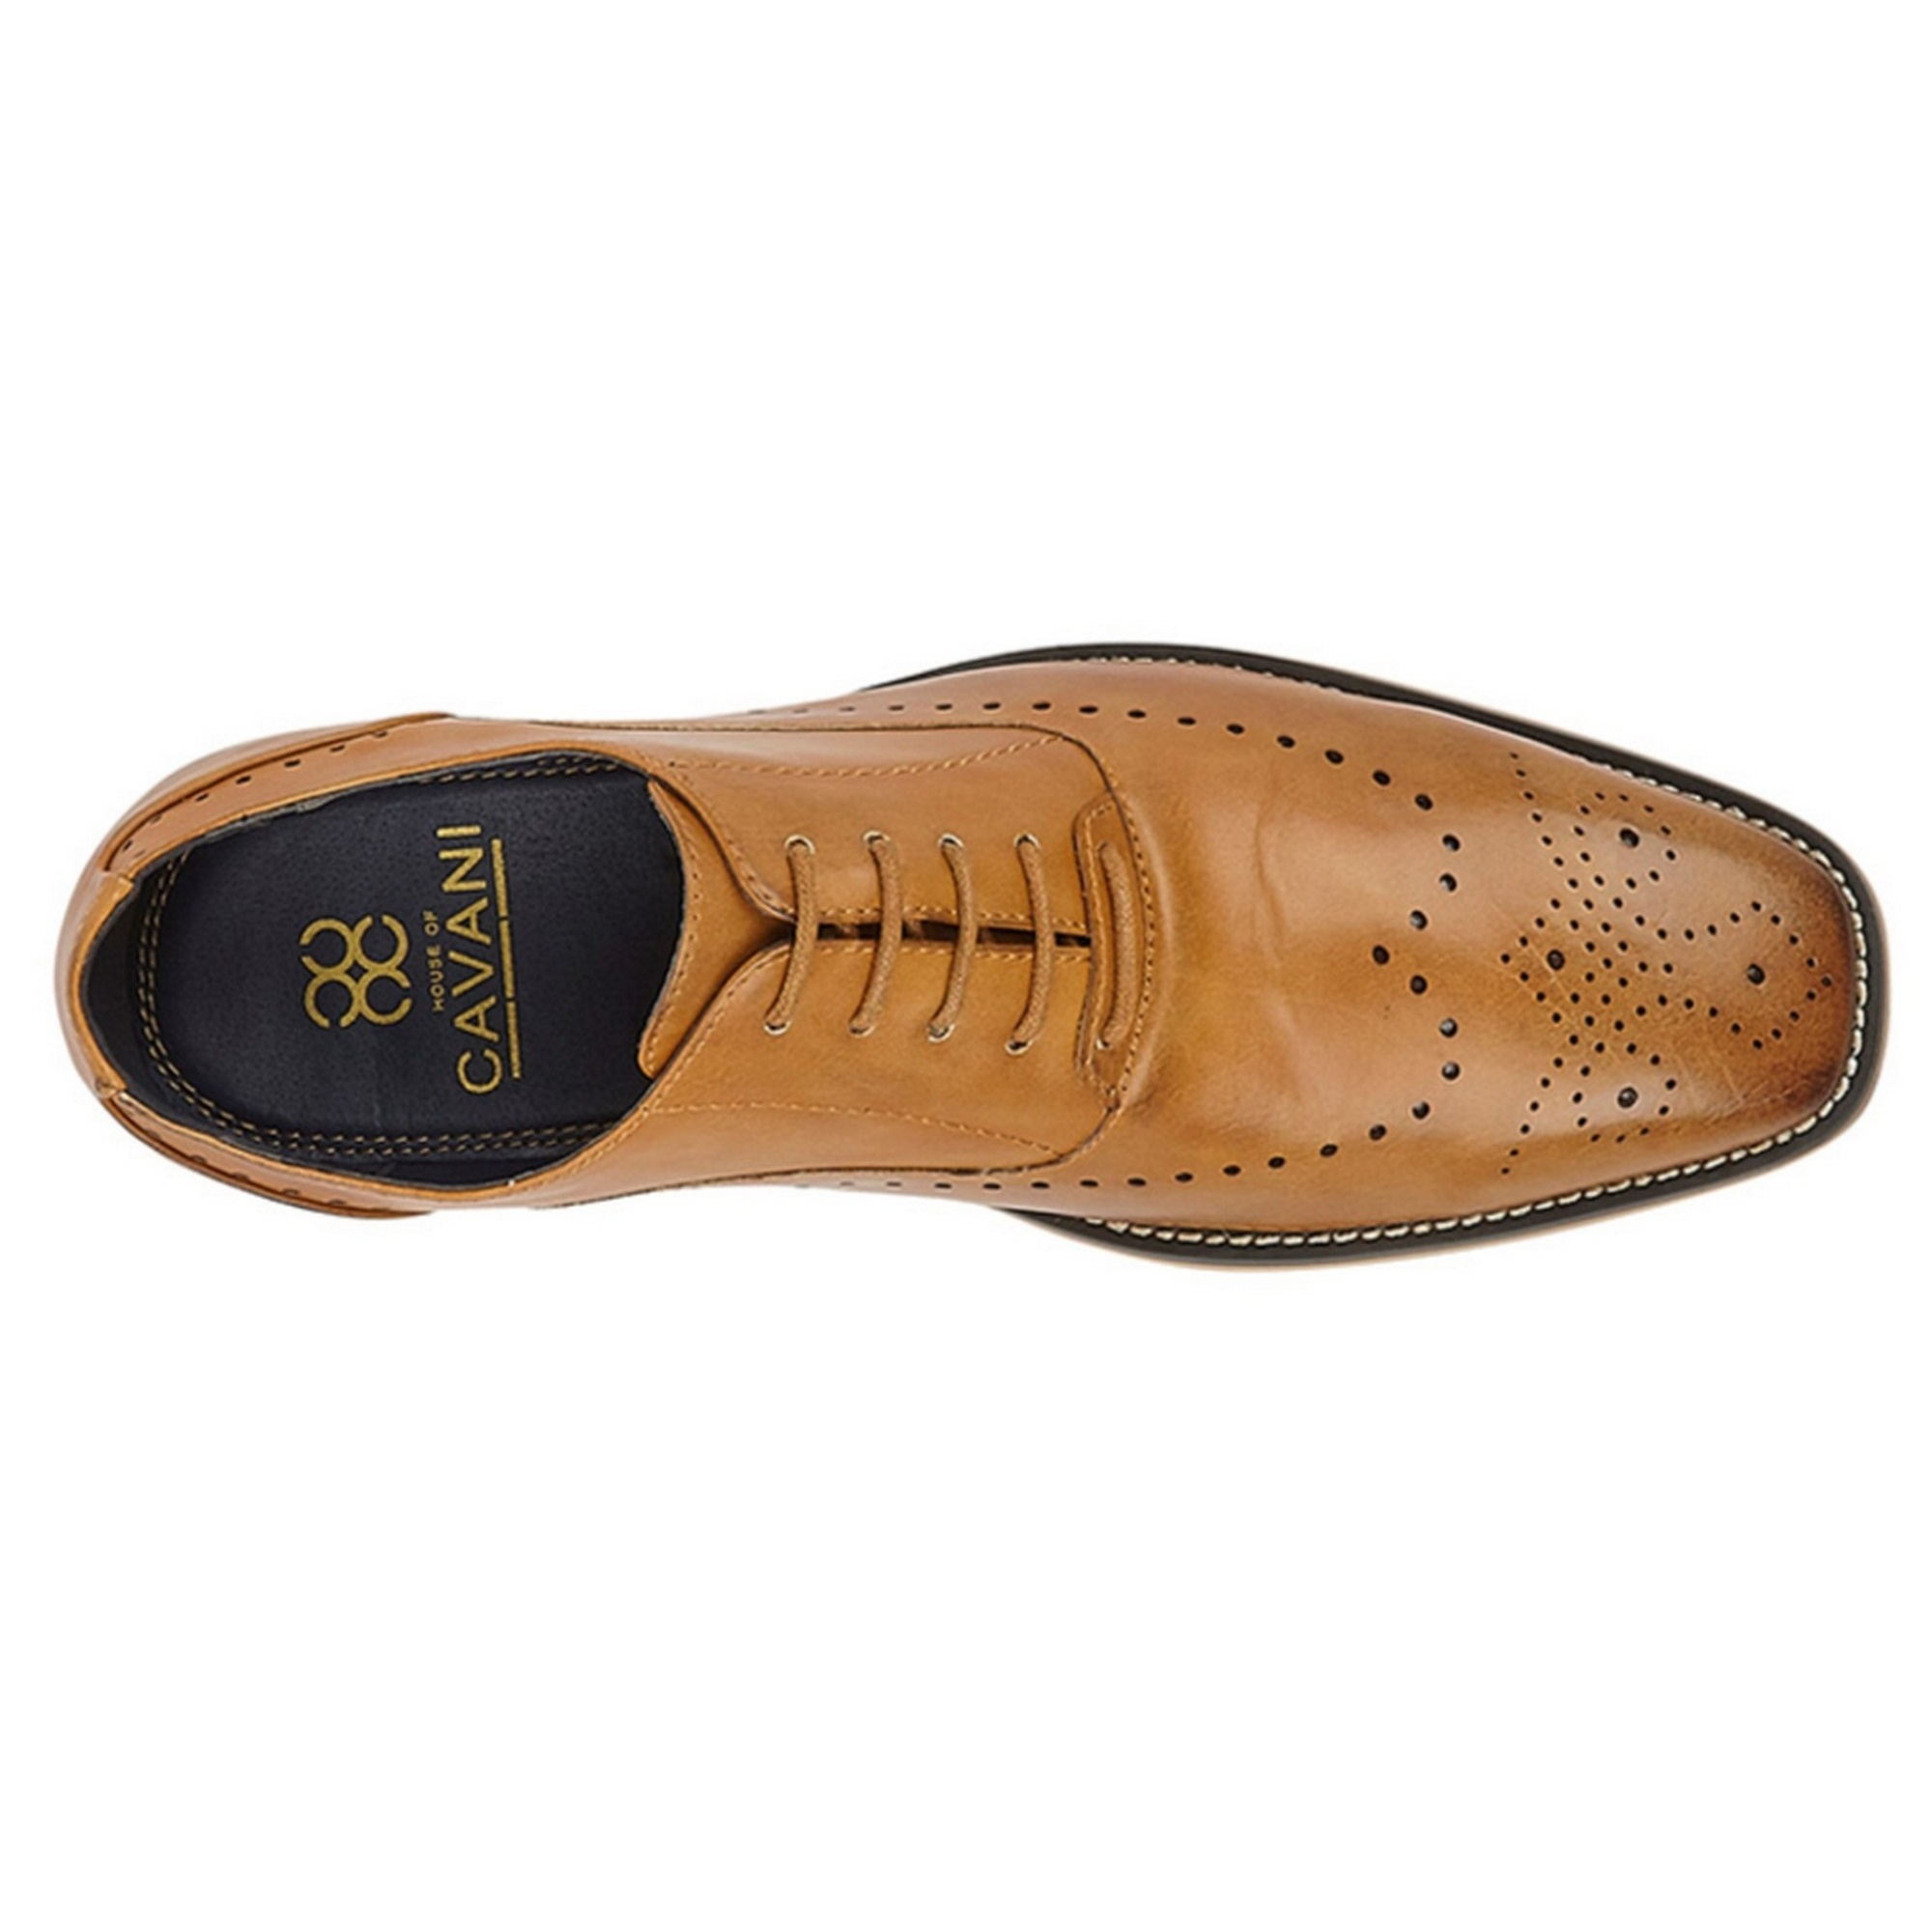 Cavani-Chaussures-Brogue-Oxford-Homme-DF1878 miniature 4